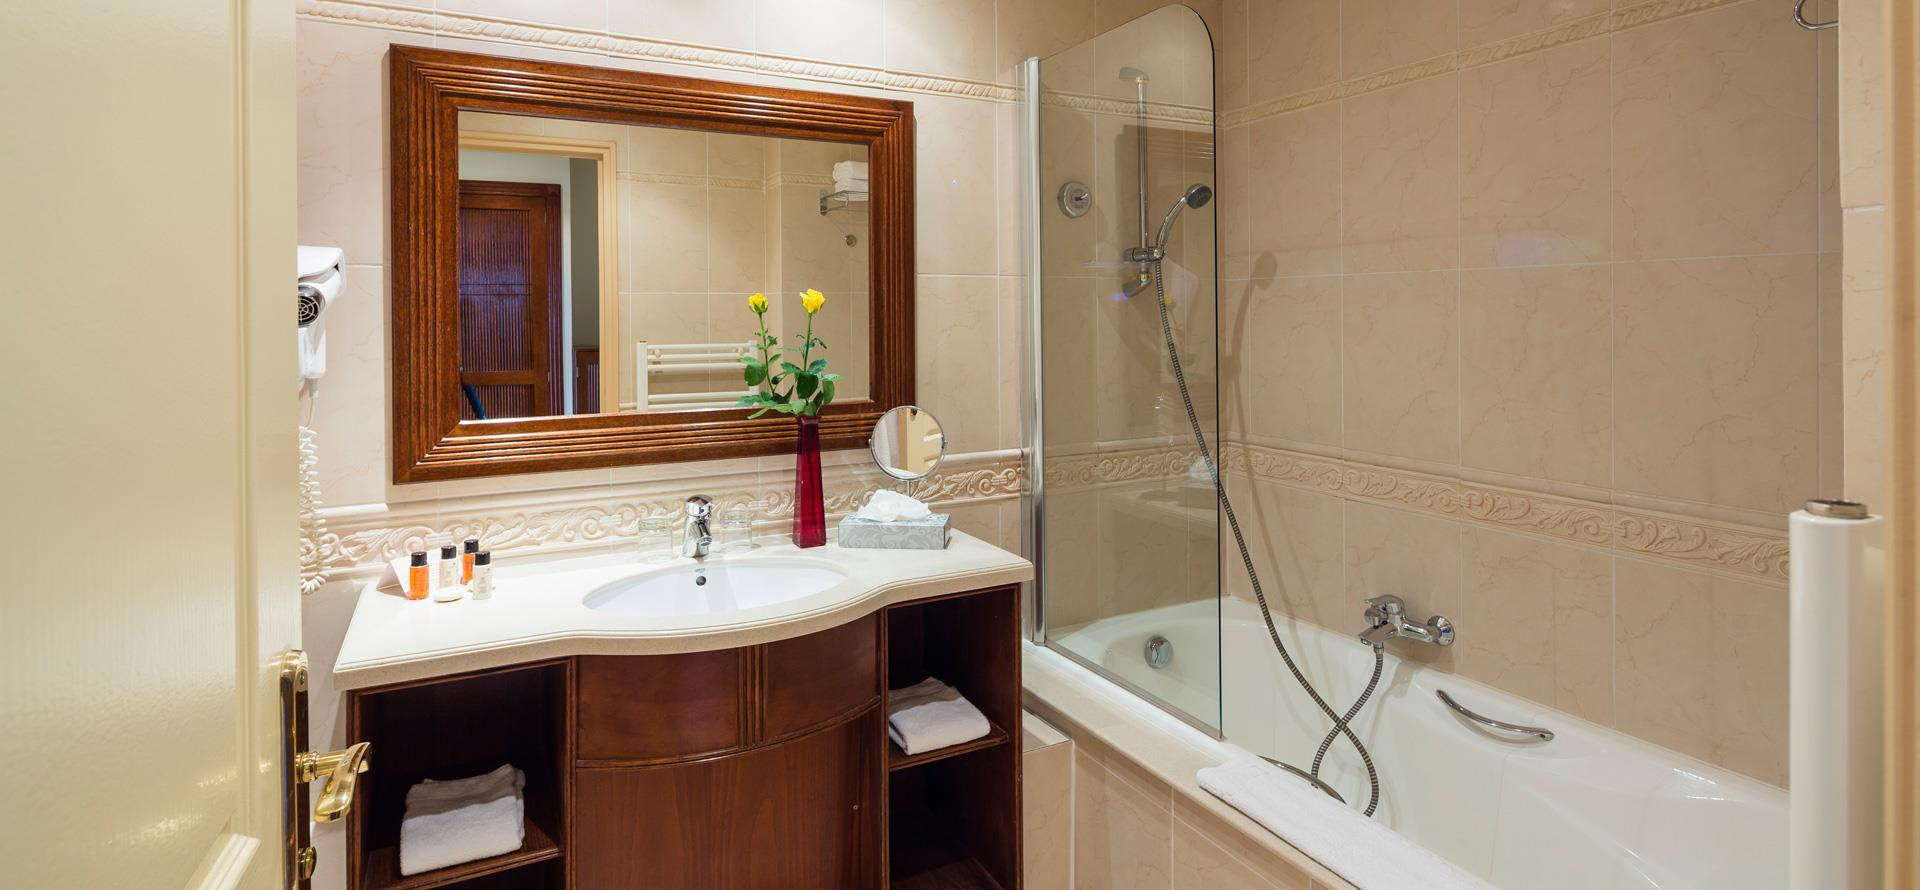 Bathroom with bath at the 4-star hotel in Occitanie, the Palmyra Golf